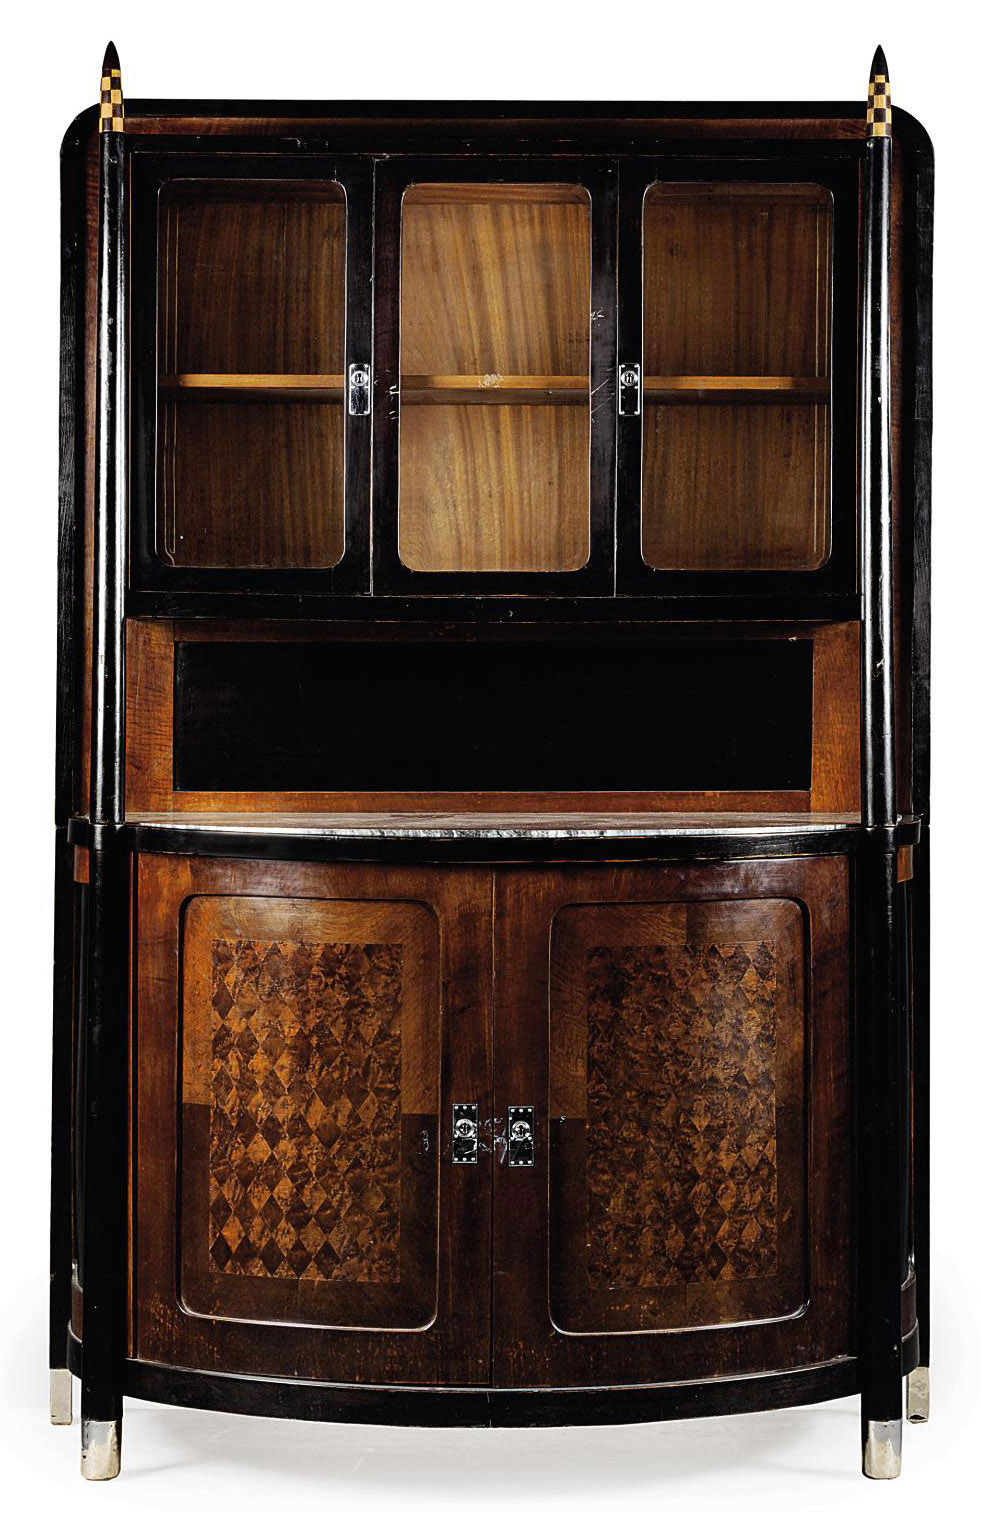 A J. & J. KOHN MAHOGANY CABINET AFTER A DESIGN BY KOLOMAN MOSER